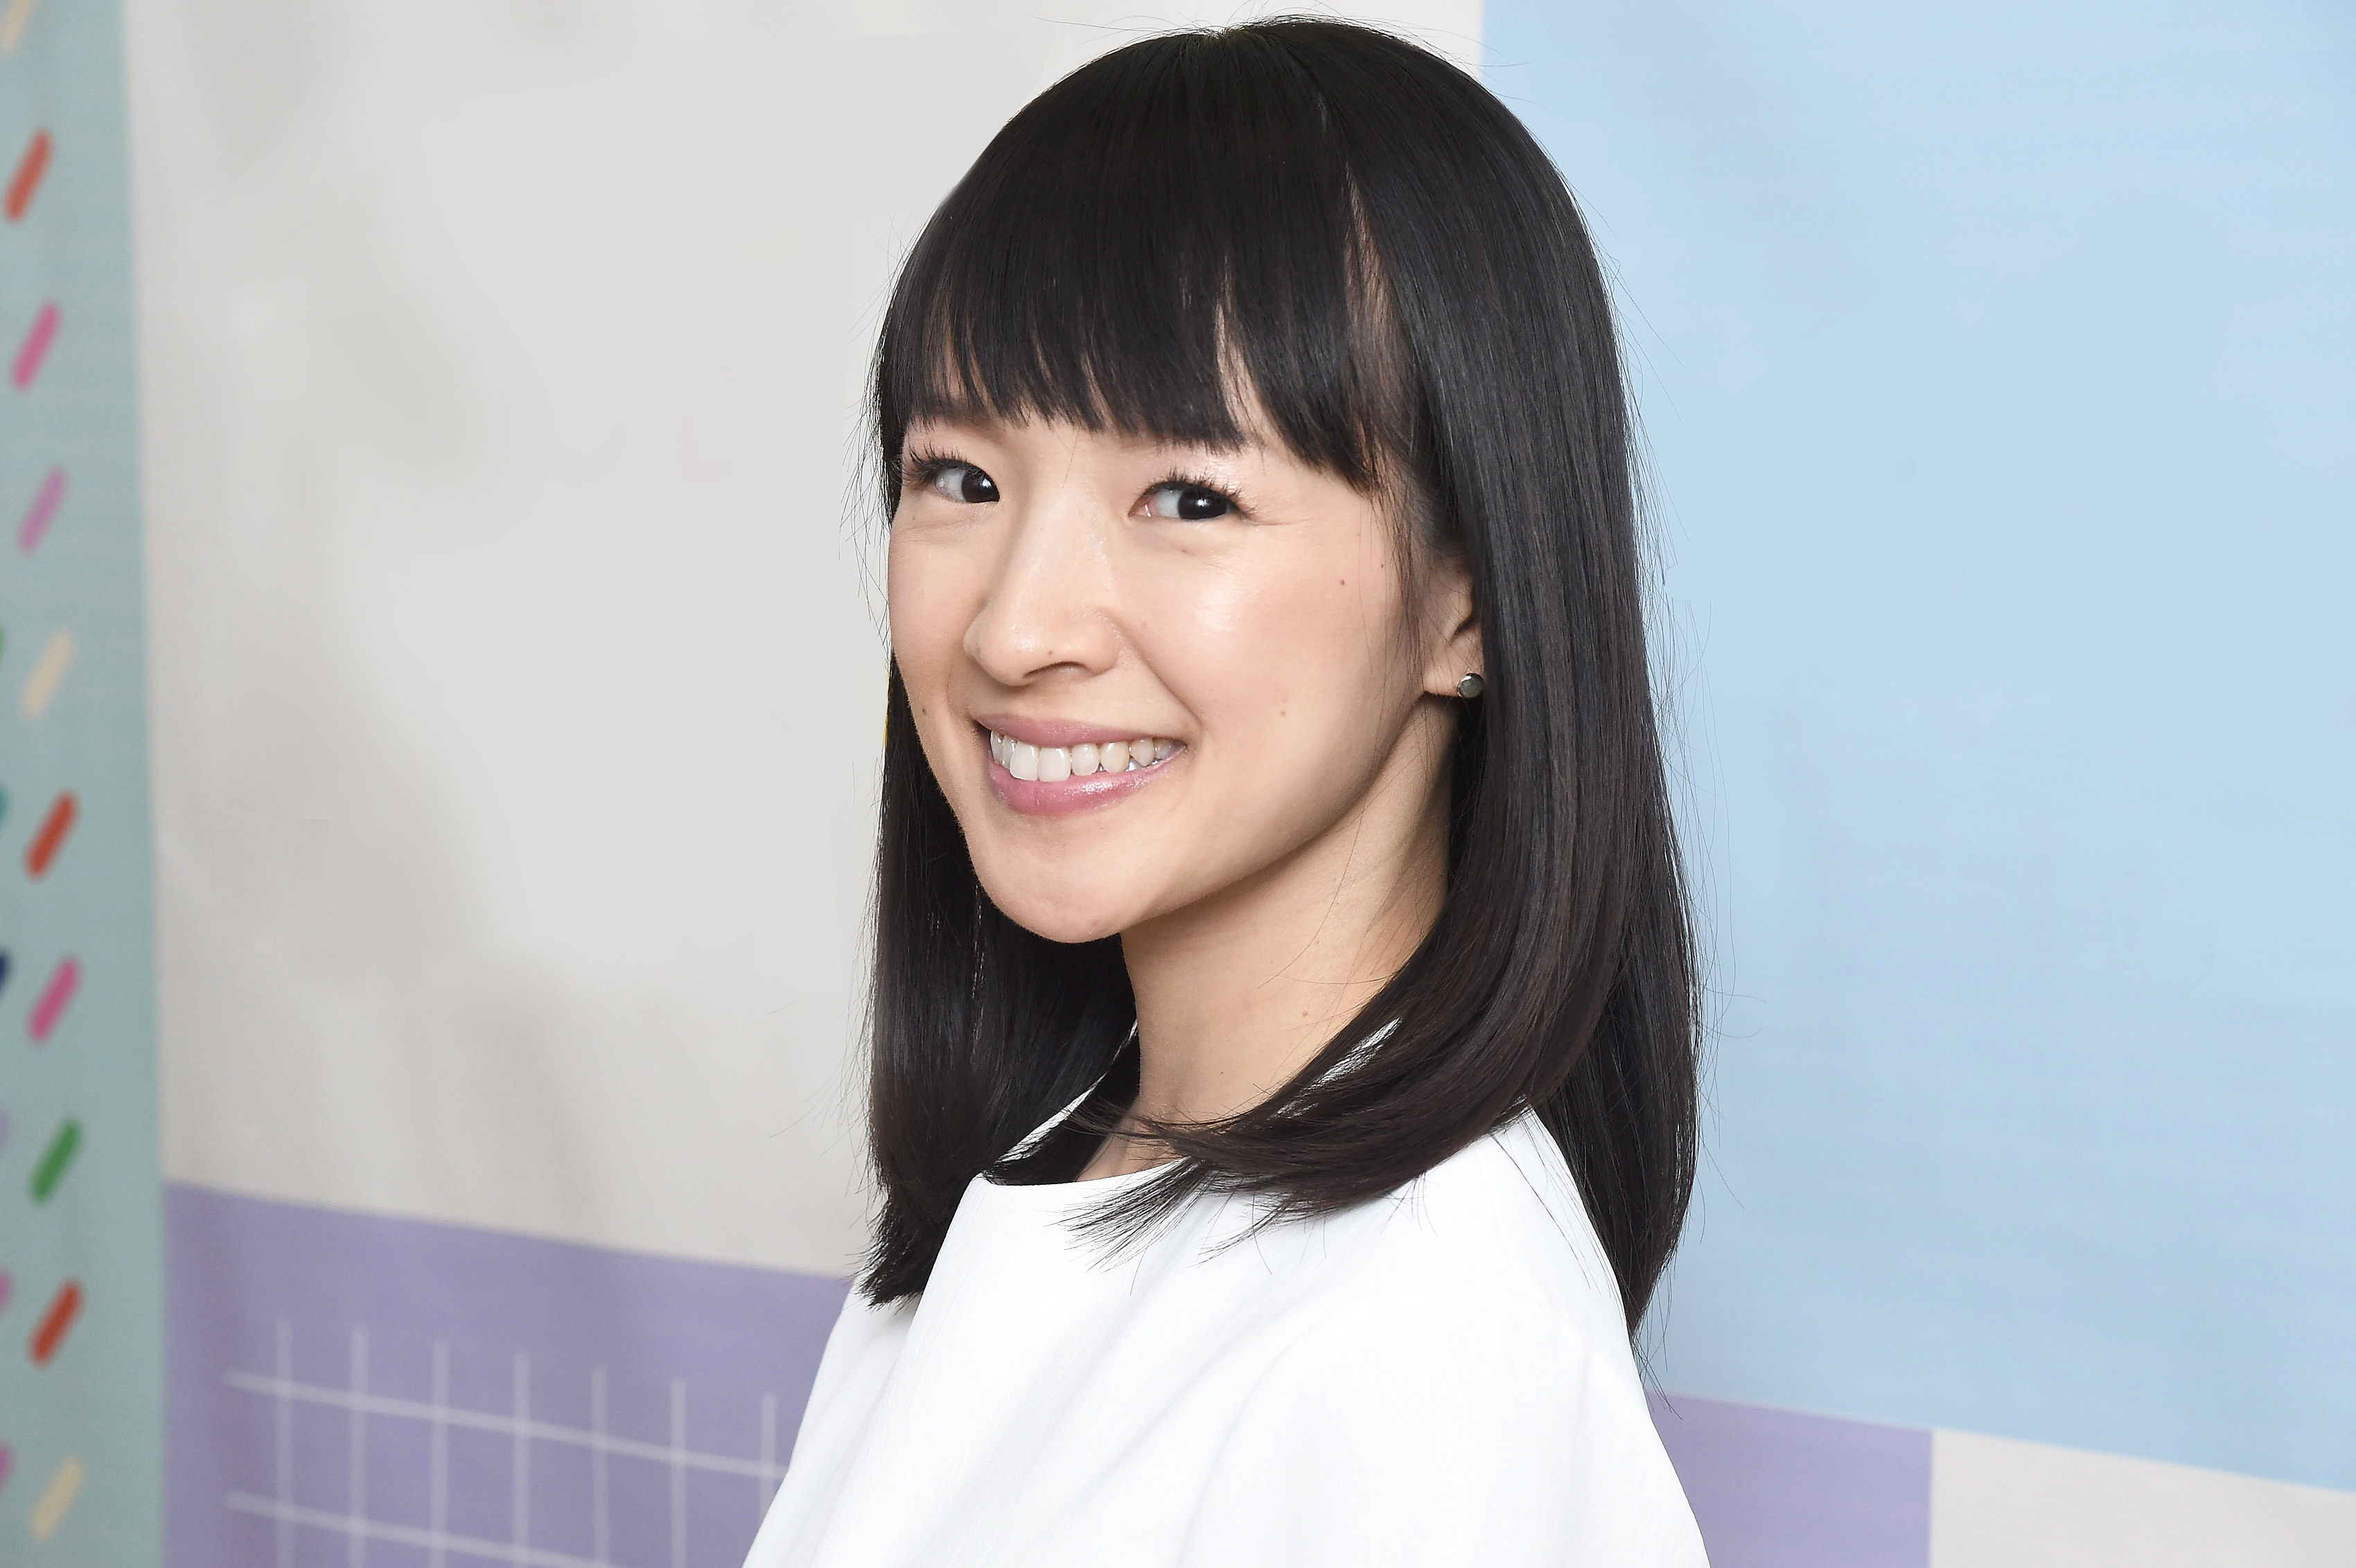 The Beginner's Guide to Marie Kondo: 5 Things You Must Know